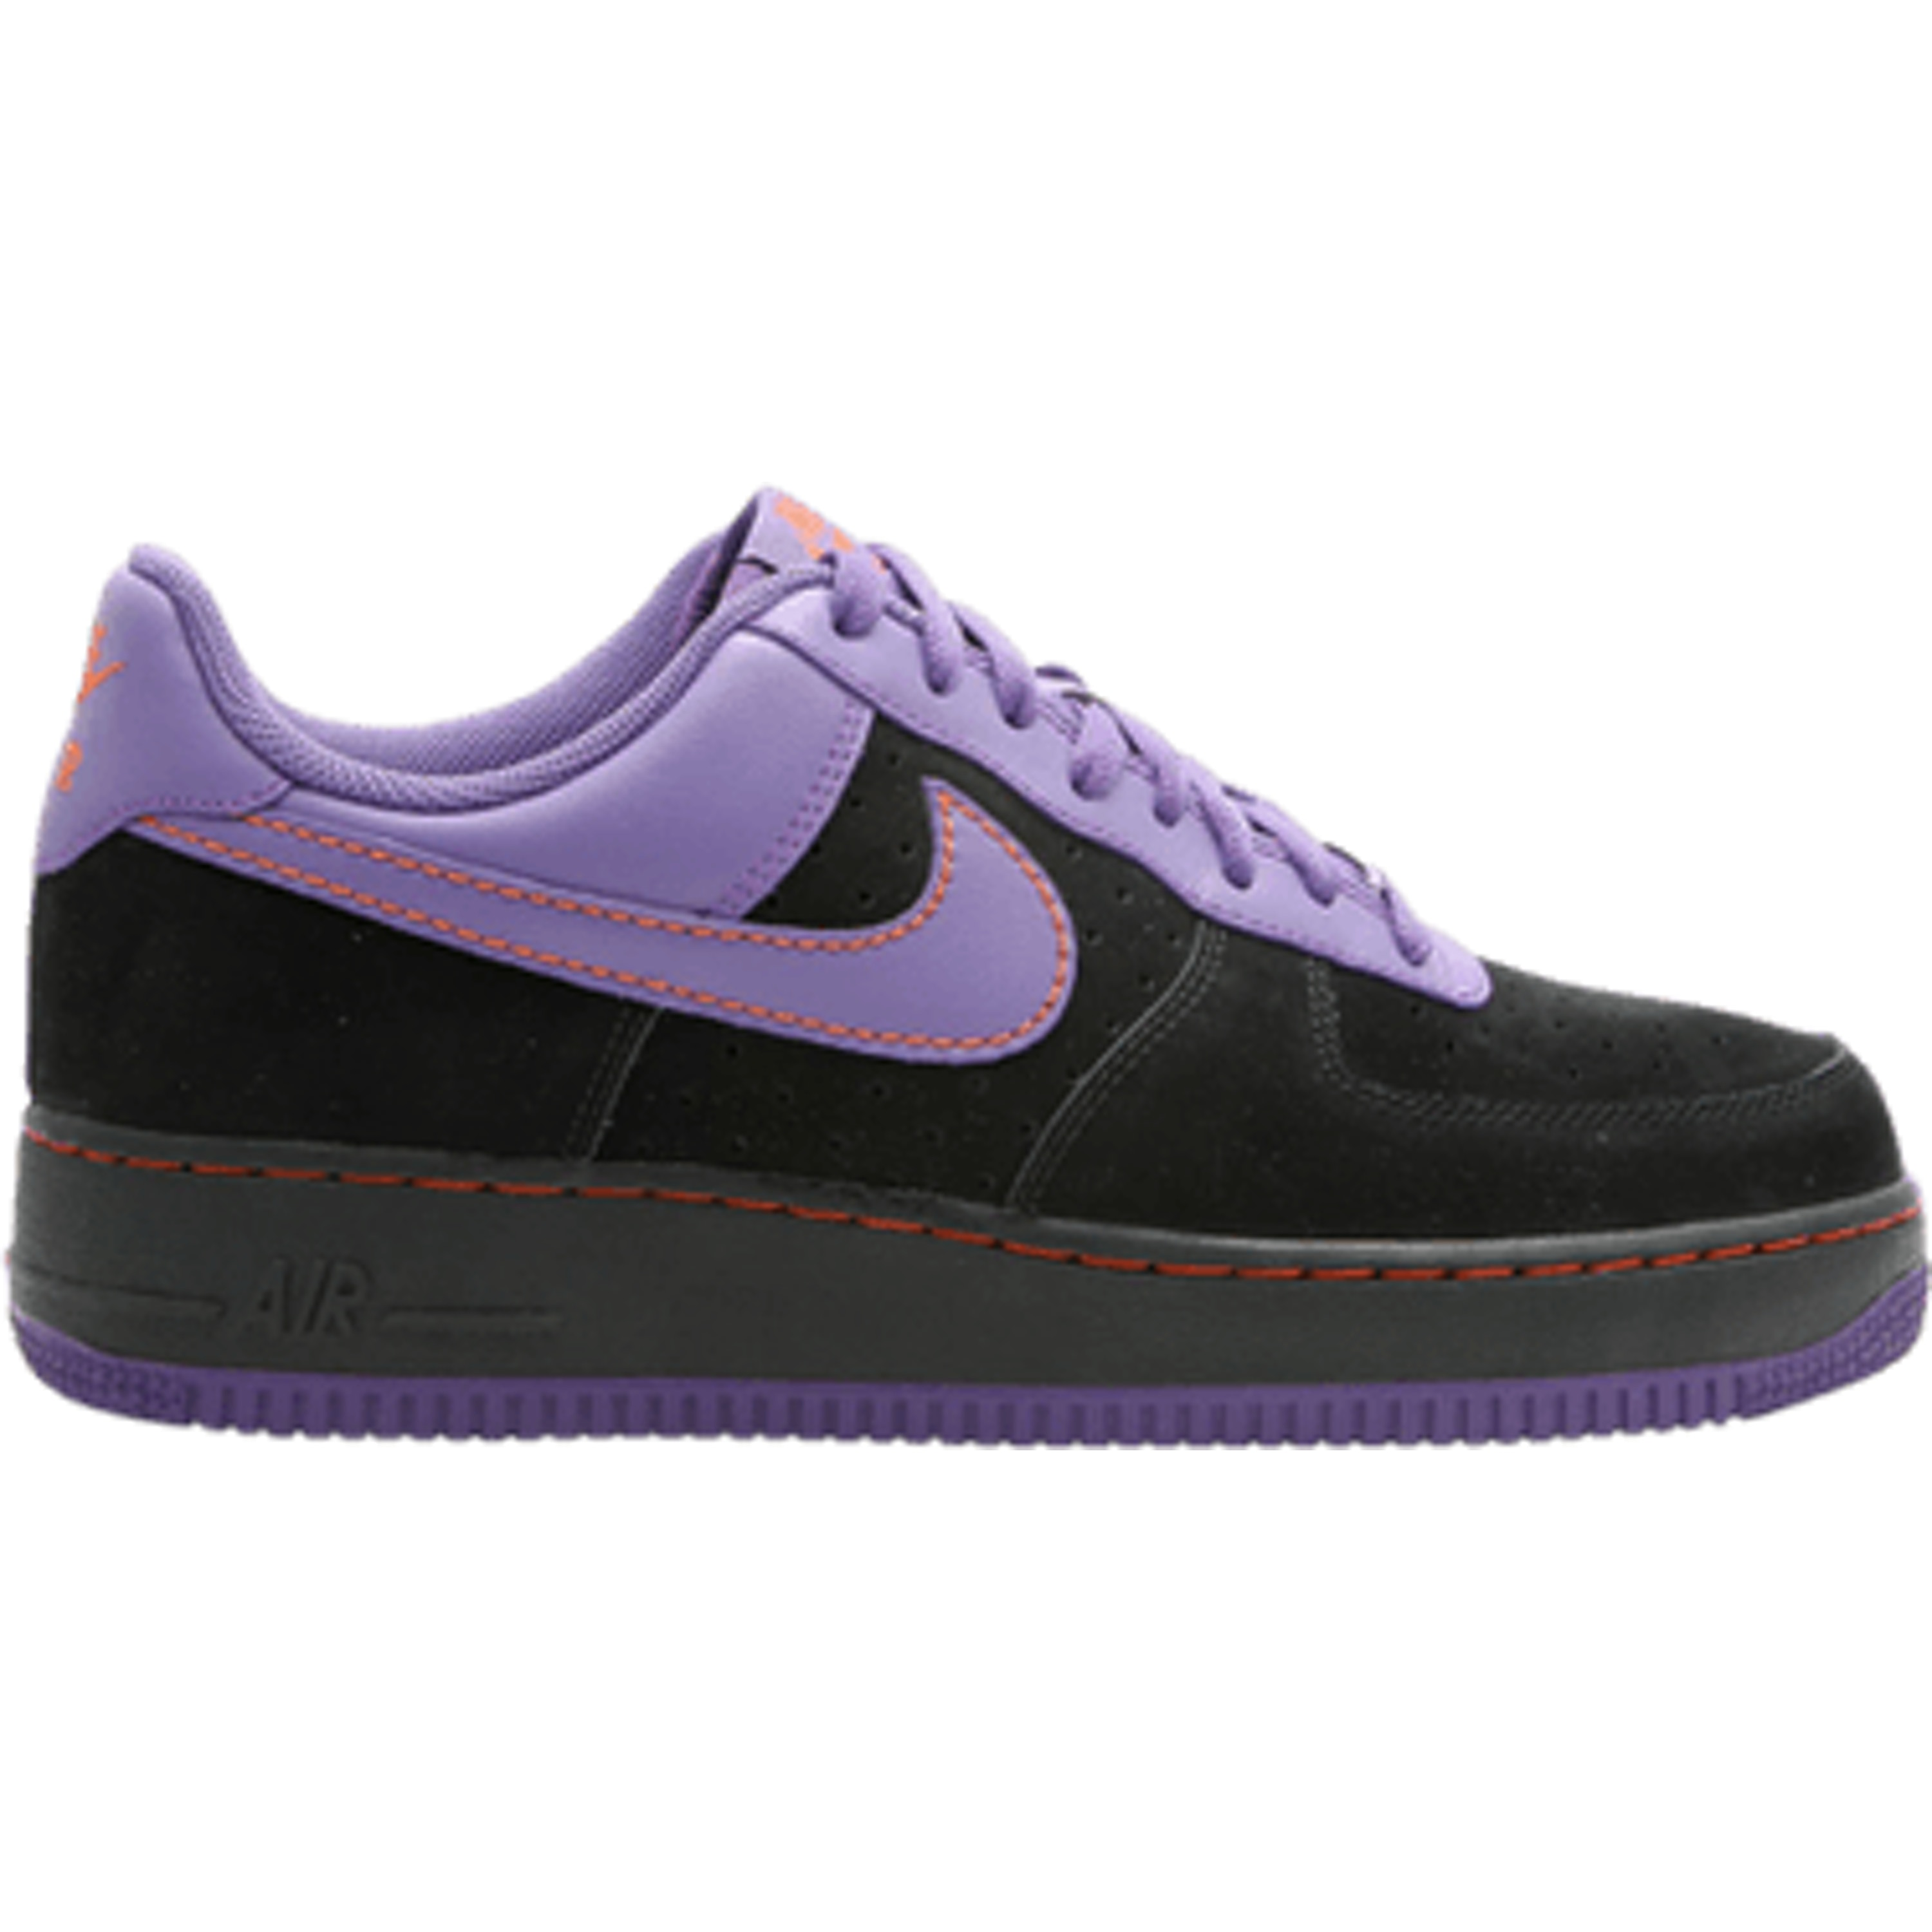 Nike Air Force 1 Low Charles Barkley Suns Away (317295-051)